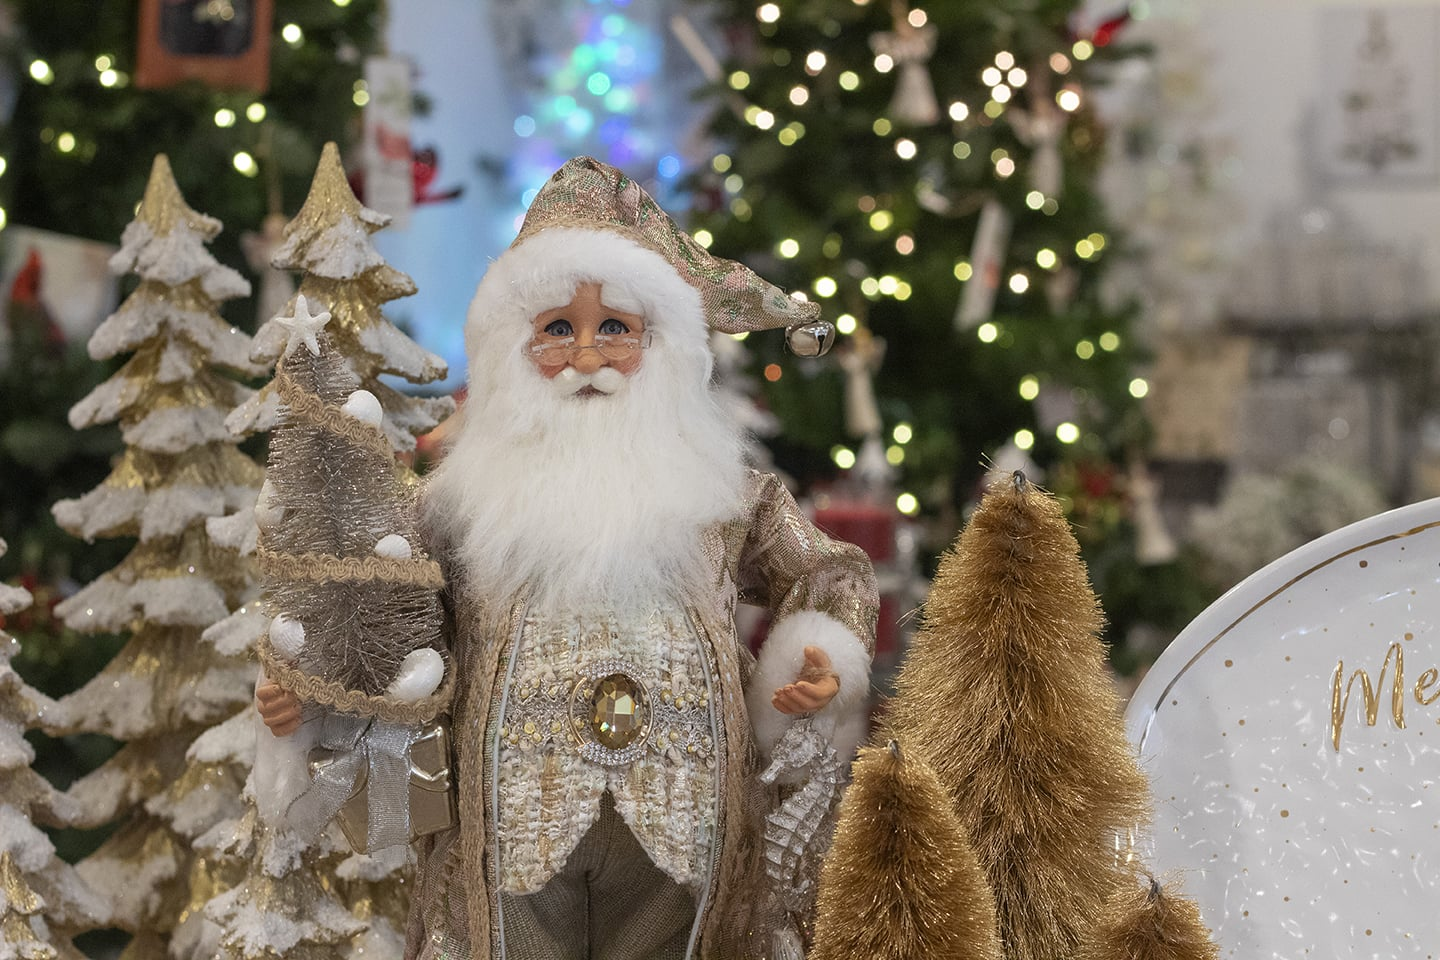 That Special Time of Year with Santa, Snow and Christmas Trees and Figurines